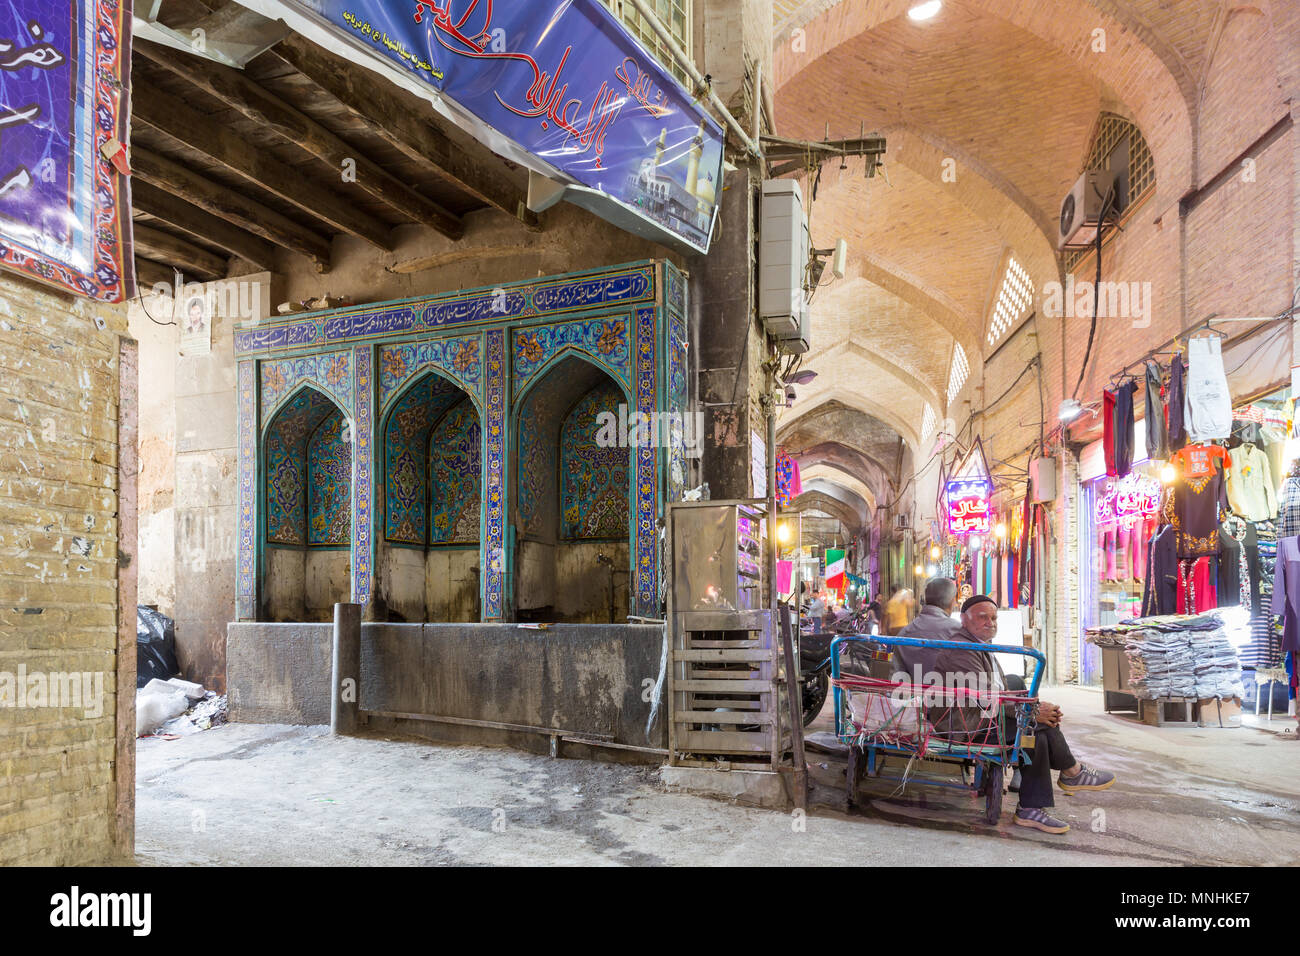 The largest bazaar in the Middle East 91